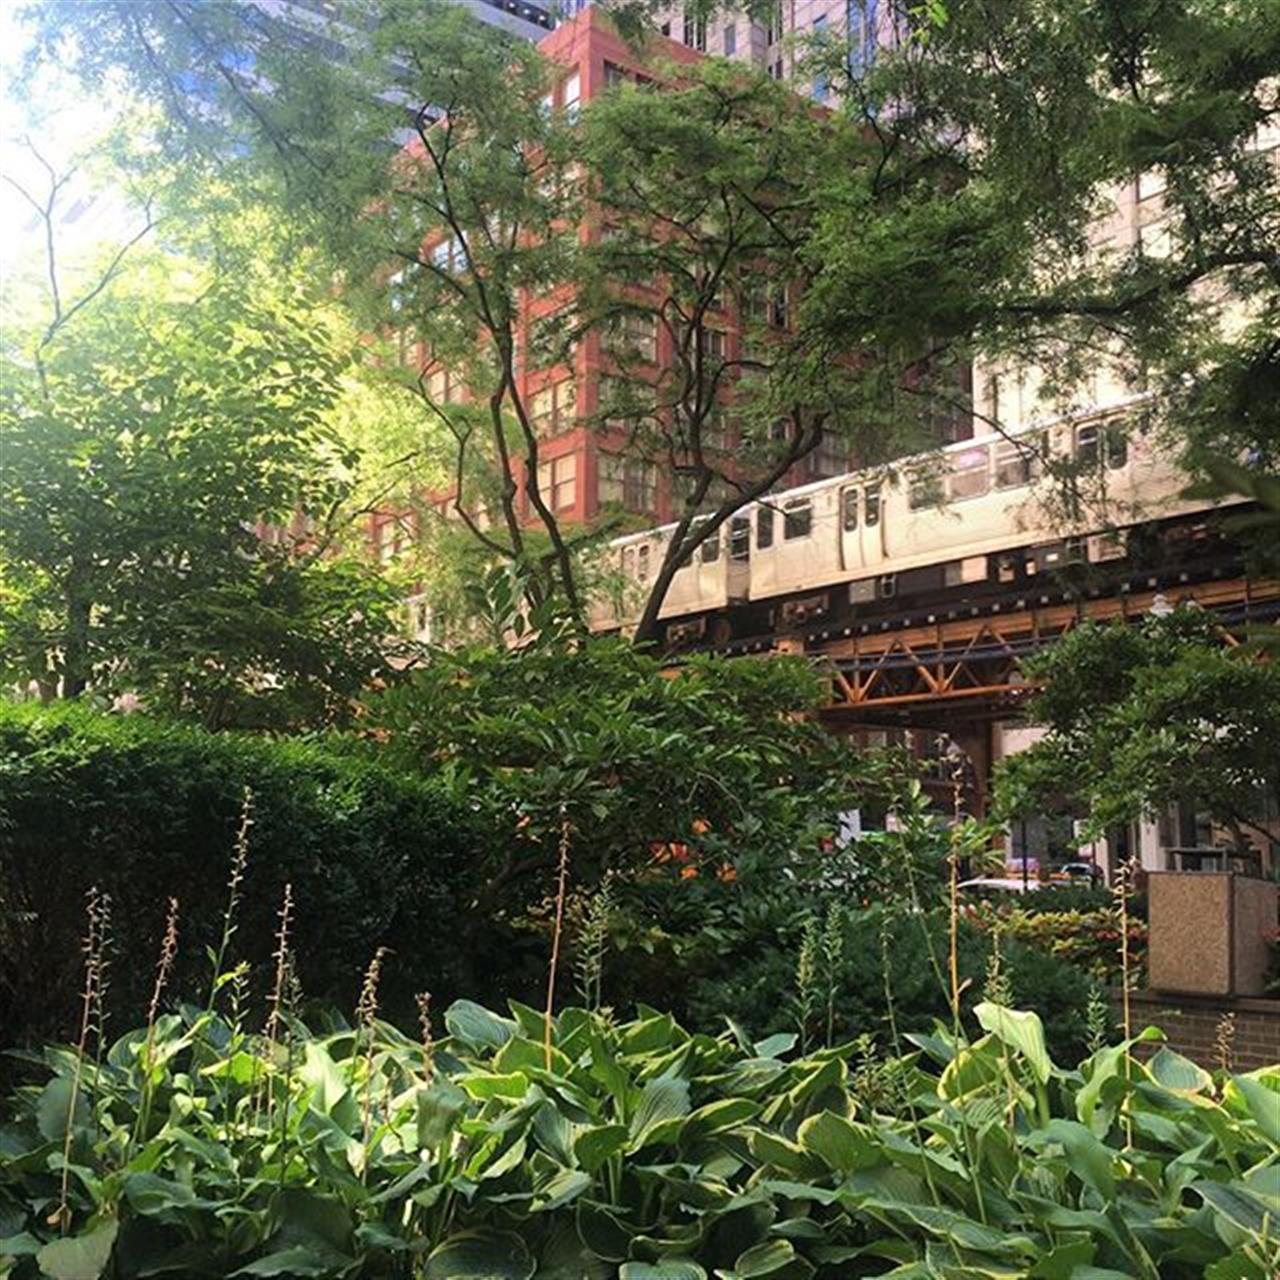 Lunch in the Chicago Loop.  Hidden garden with an EL track cut through!